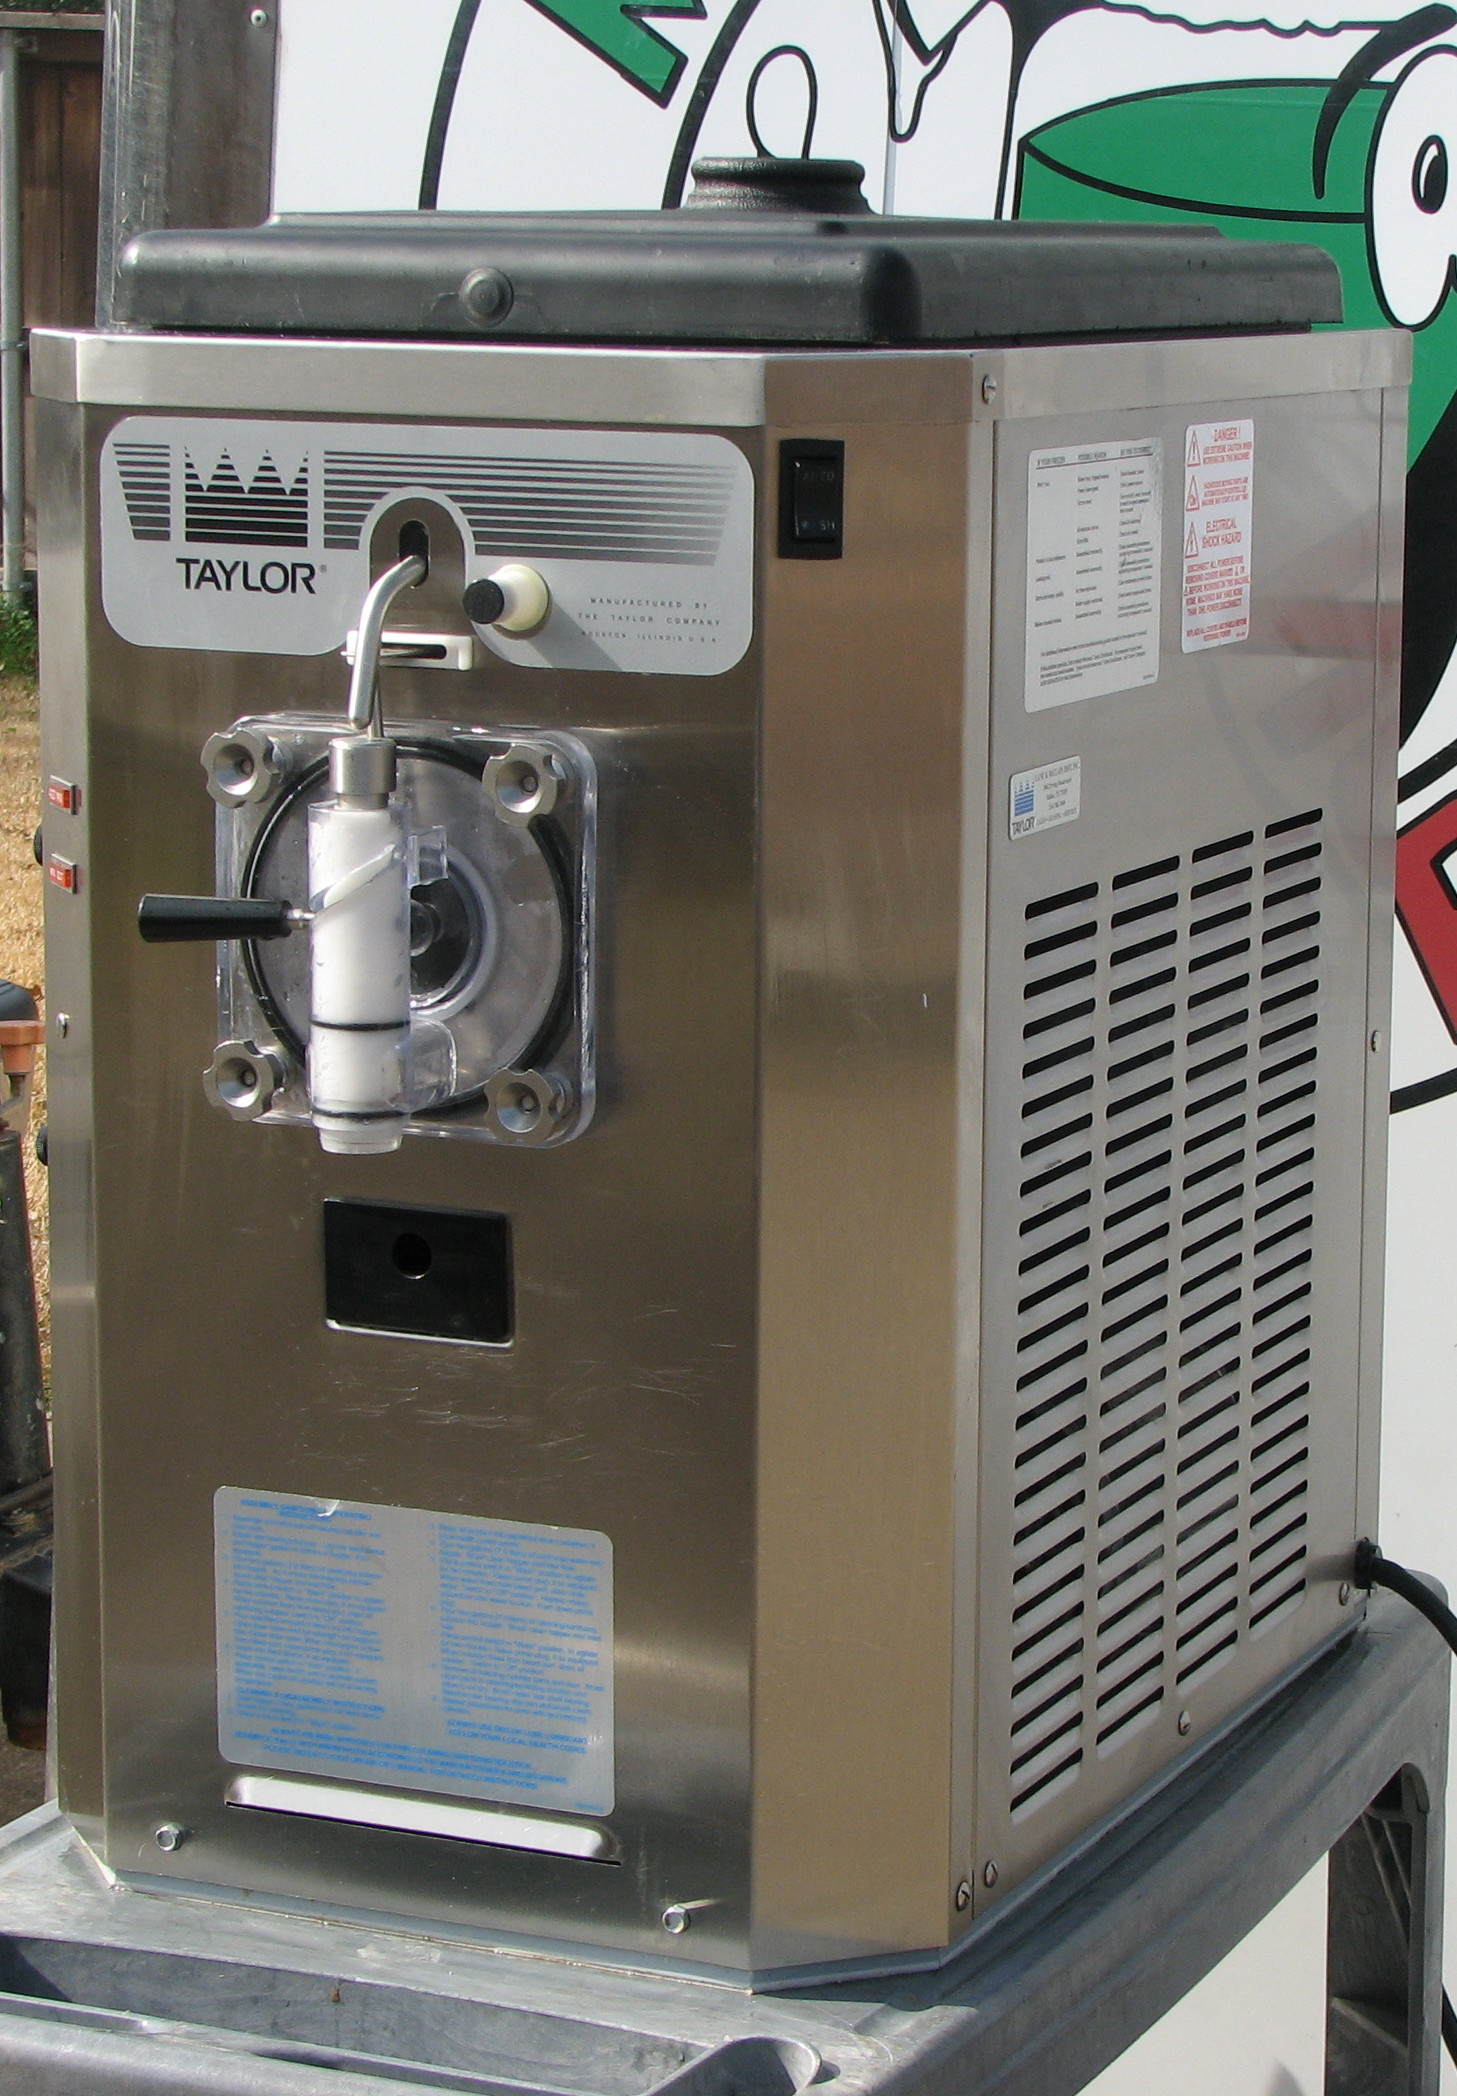 Taylor 430 frozen drink machine